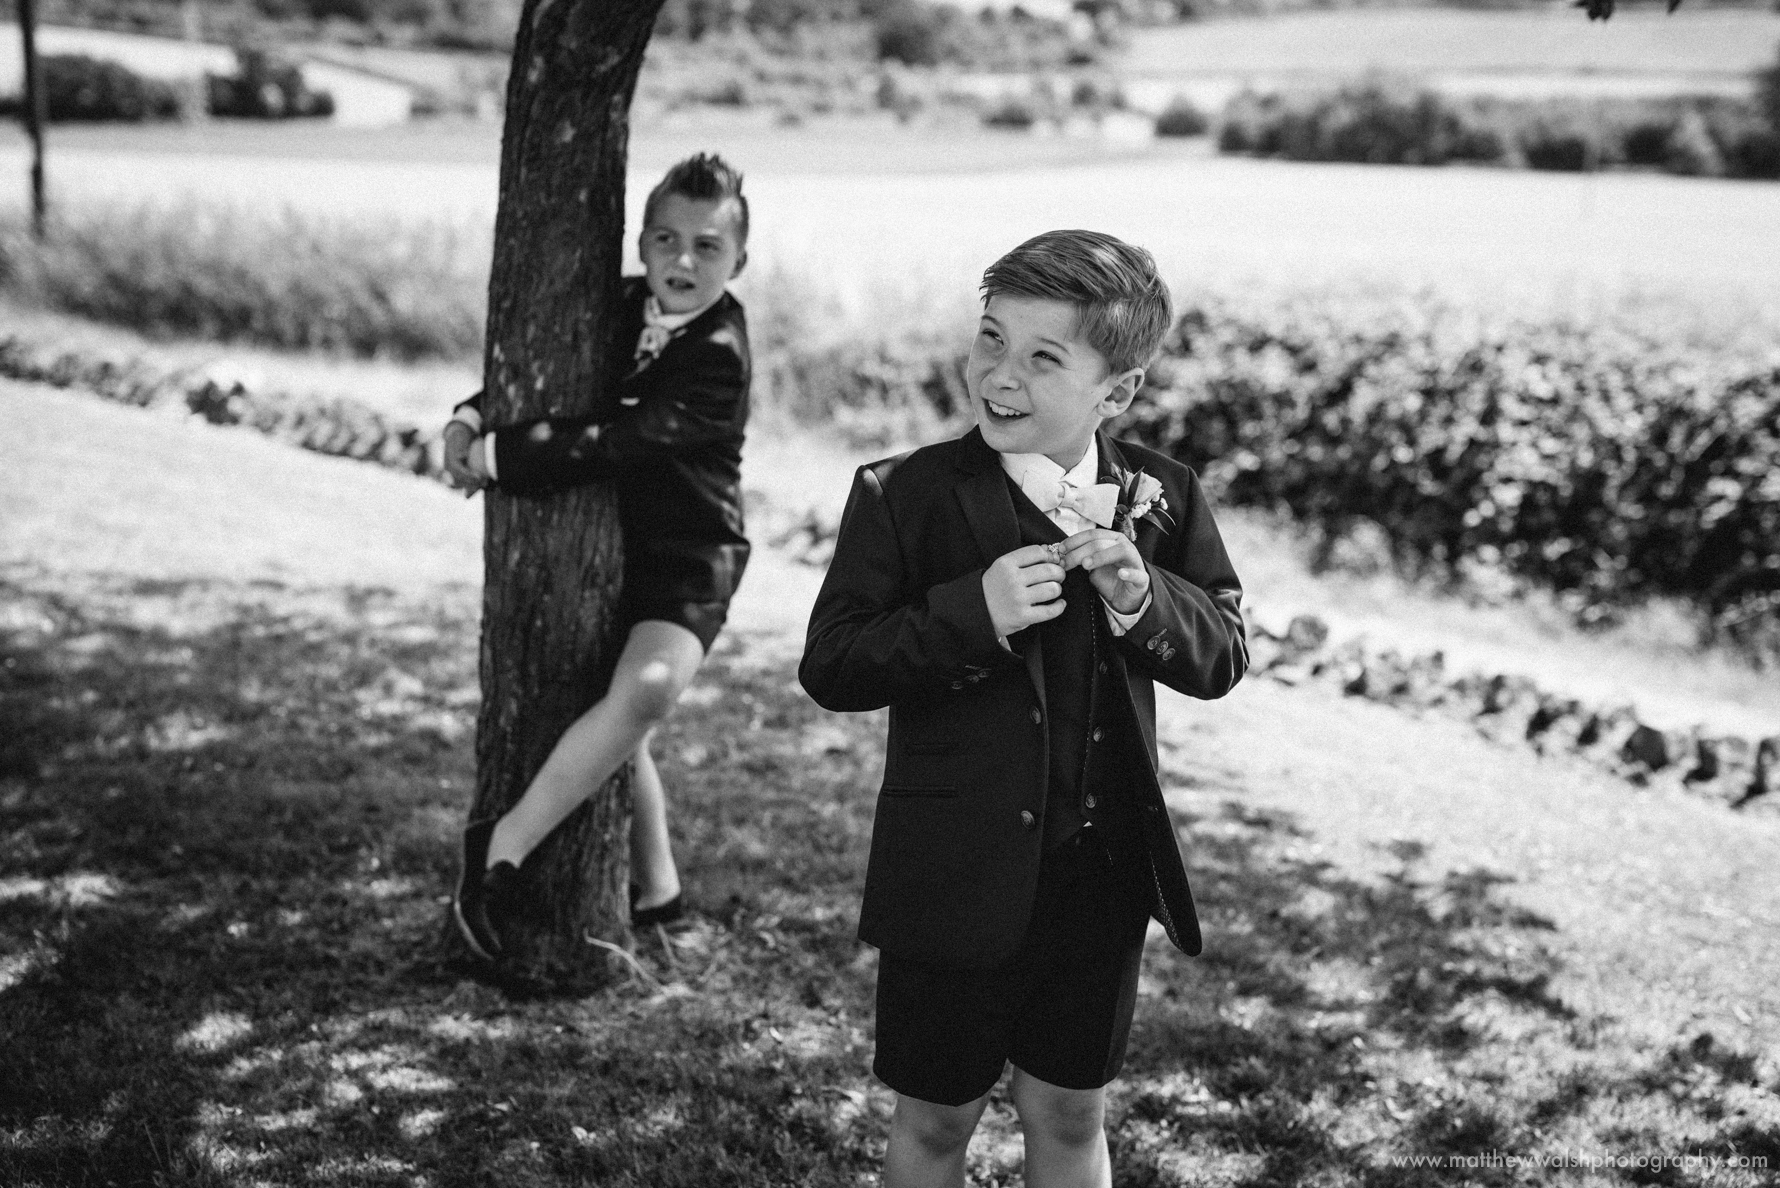 Pageboys in the shade looking very smart and stylish